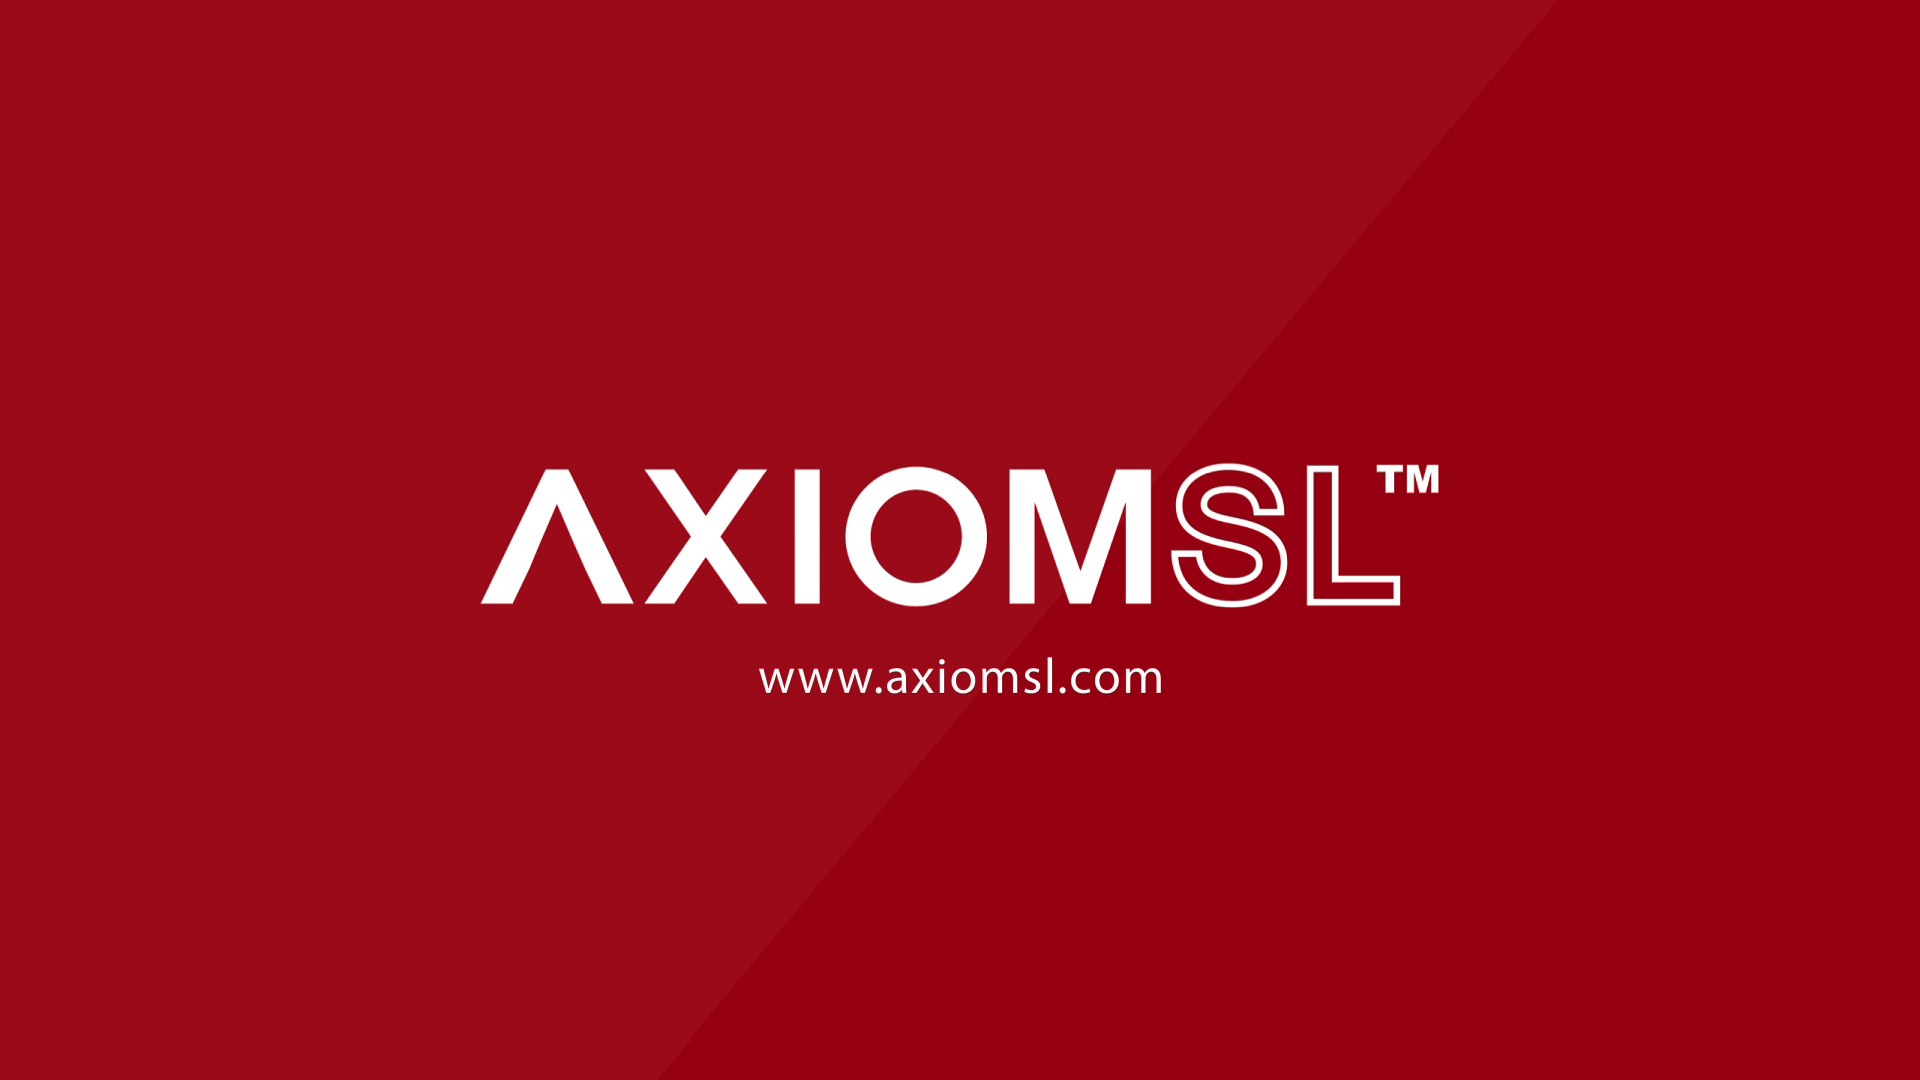 AxiomSL Launches Environmental, Social and Governance (ESG) Solution to Automate Sustainability and Social Impact Reporting